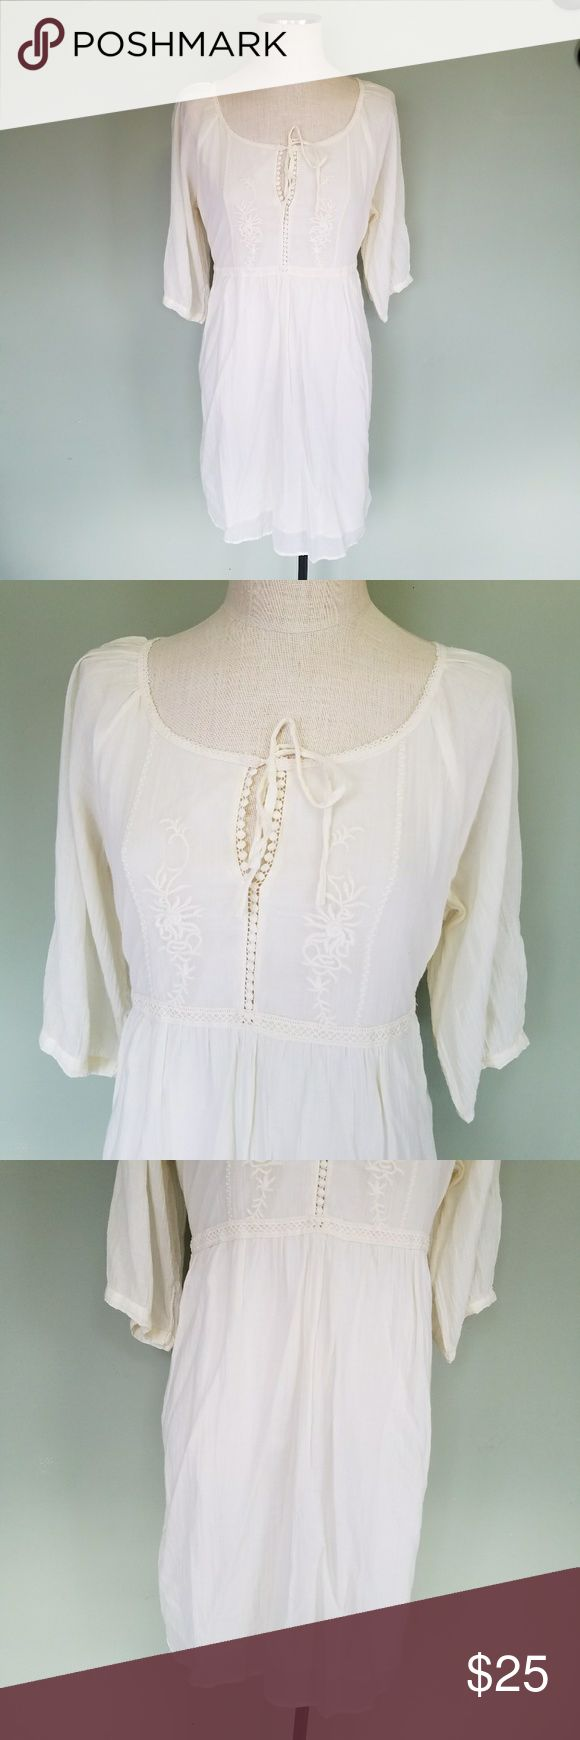 """Old Navy Embroidered Peasant Dress Old Navy.  Women's XL. Peasant Boho Dress. Color: Off-white. Floral embroidery top with lace trim and tied neckline. 3/4 length sleeves. Pleated knee length skirt.  Tie back waist.  100% Cotton. Fully lined.  Excellent condition!  Bust-20.75"""" Waist- 19"""" Length- 38.5"""" Old Navy Dresses"""